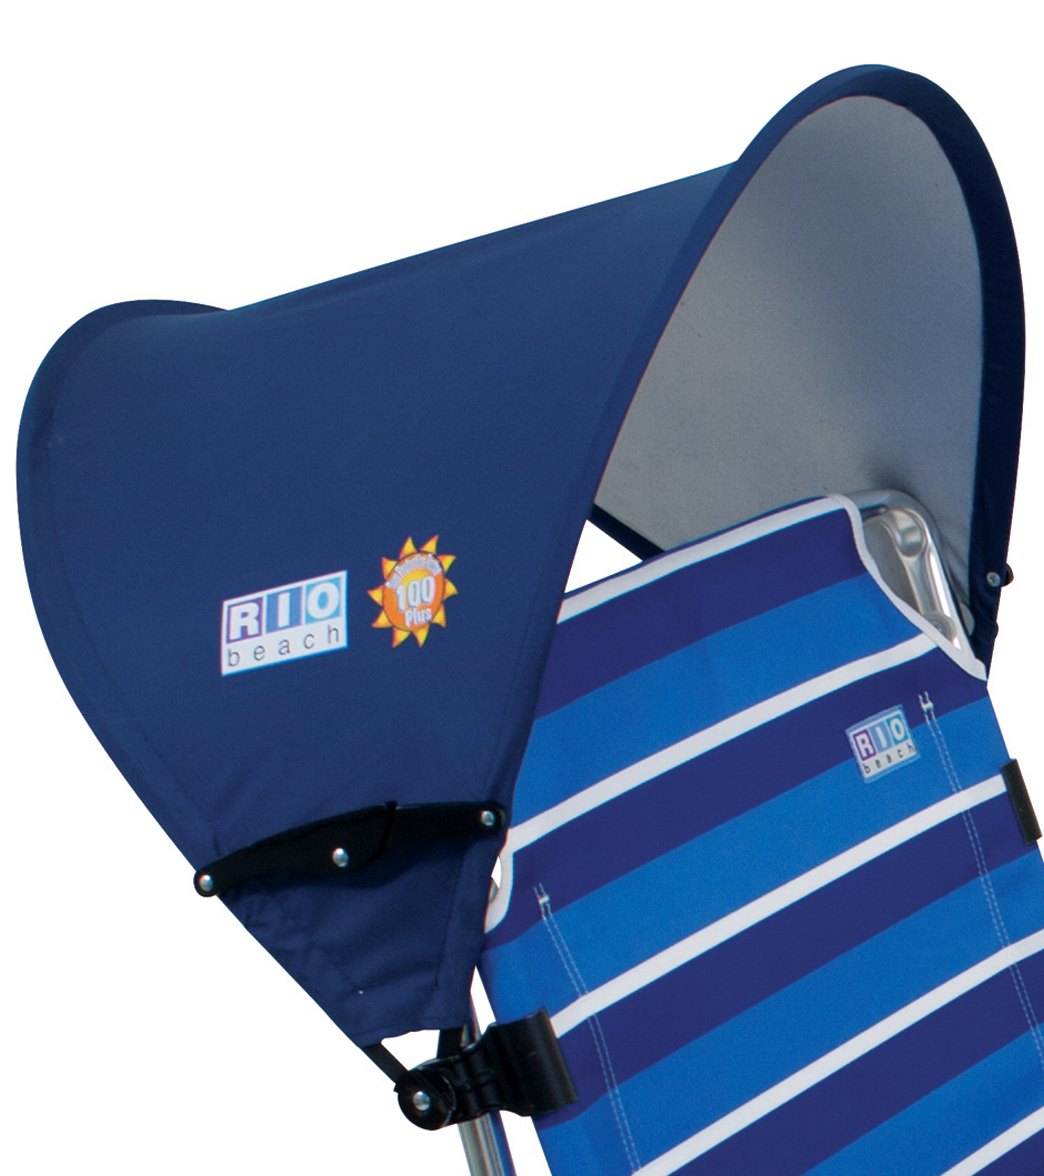 Beach Chairs With Umbrella Canopy Shade For Beach Chairs Eliminates Need For An Clamp Umbrella